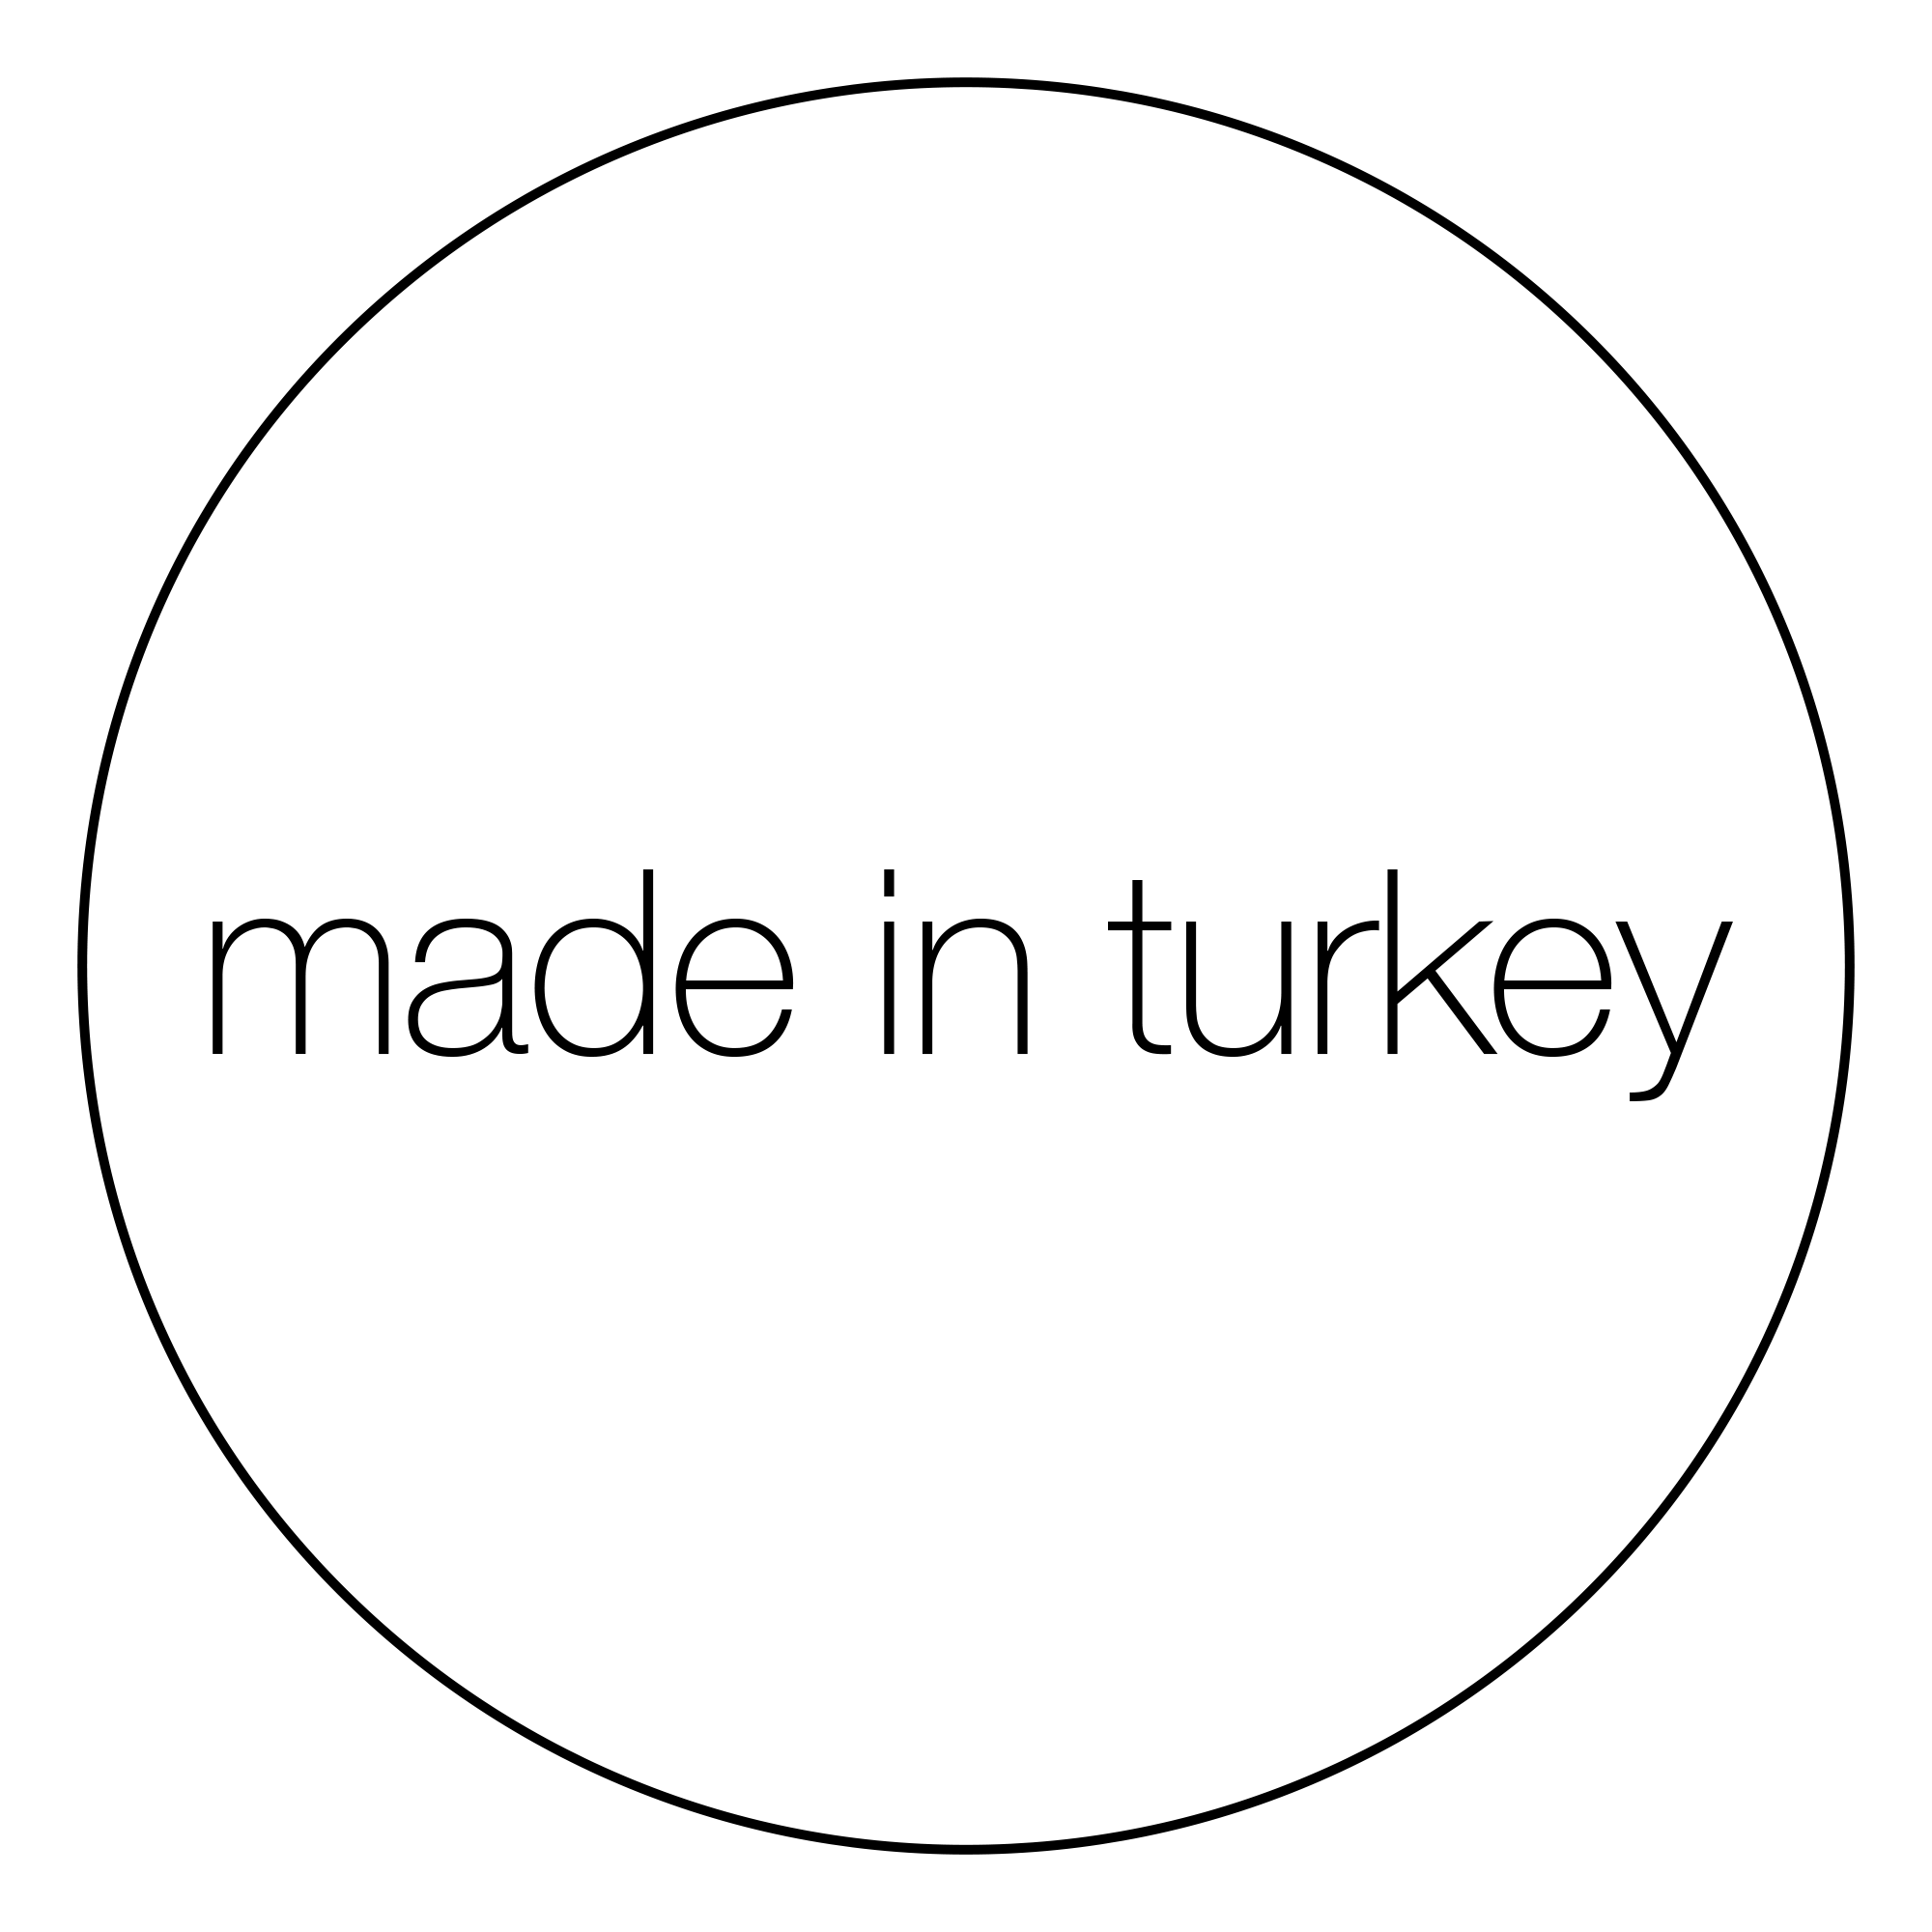 attribute-origin-made-in-turkey